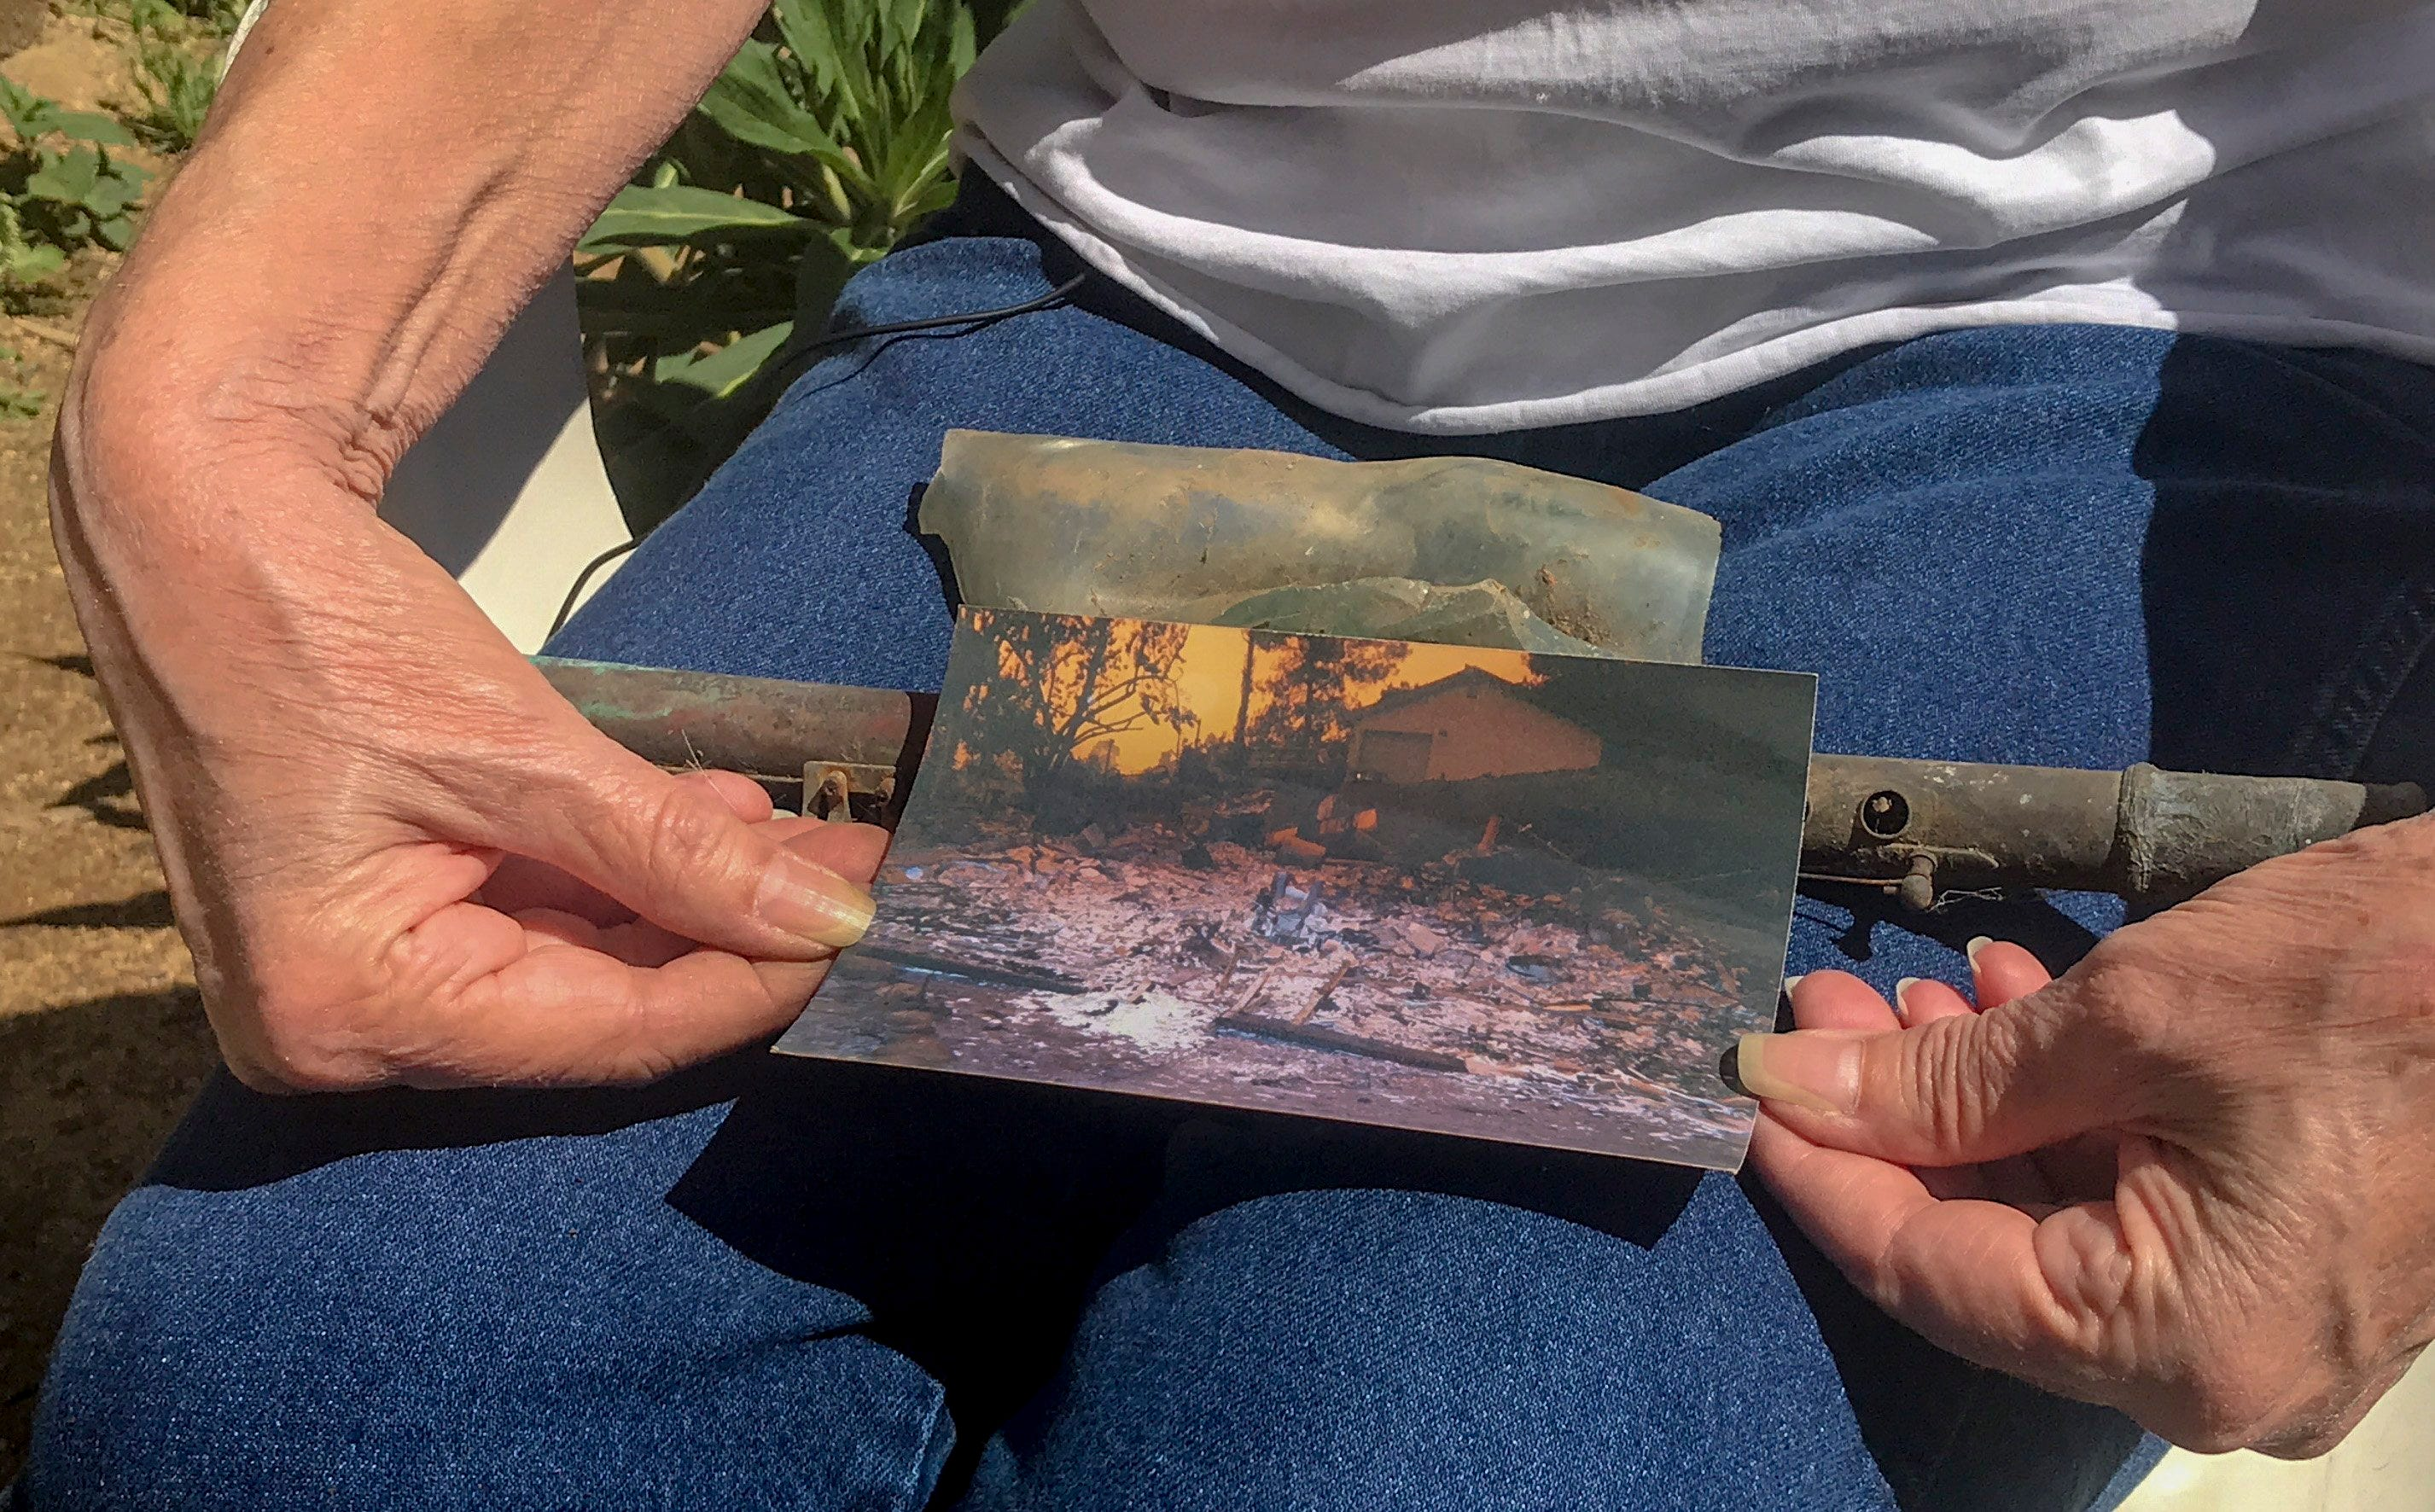 Cheri Skipper, a Harbison Canyon resident, holds her burned flute and a picture showing what her home looked like after it burned during the Cedar Fire in 2003.